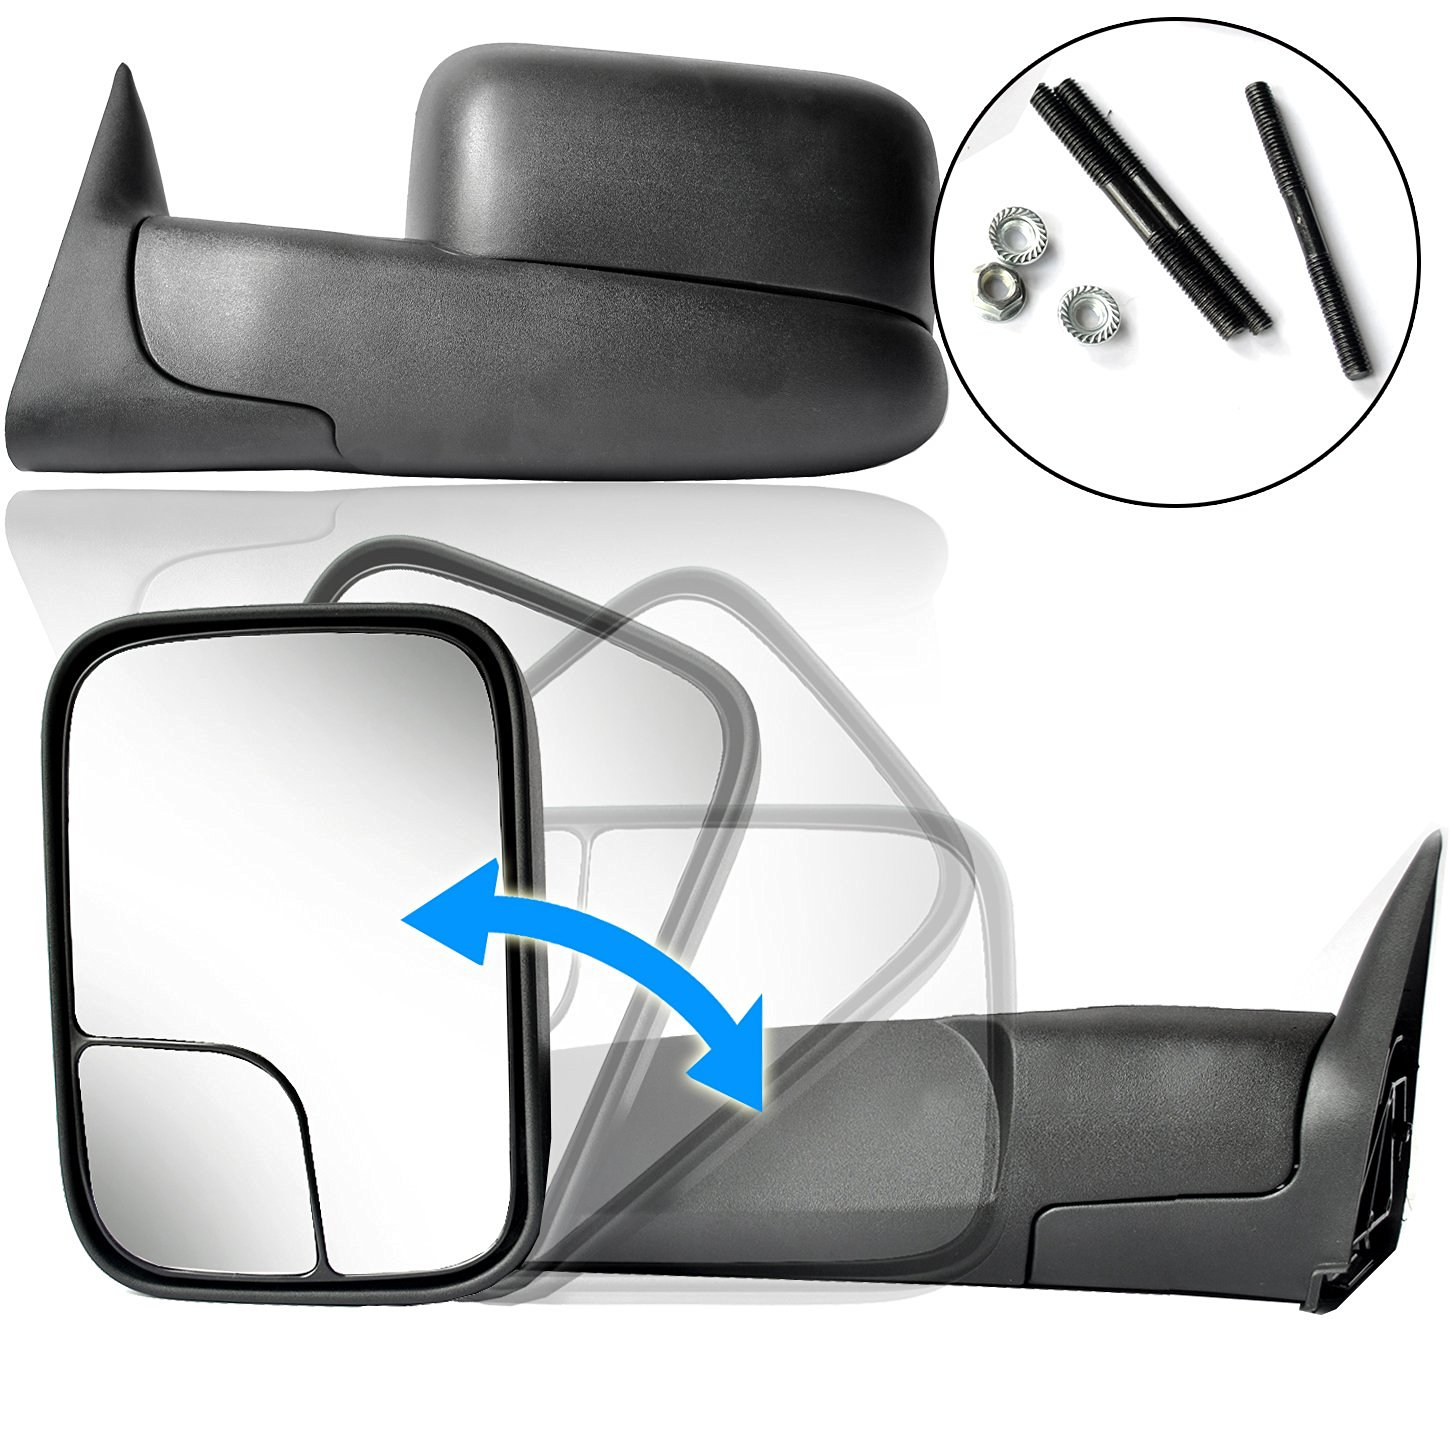 ECCPP For Dodge 94-01 Ram 1500, 94-02 Ram 2500 3500 Pickup Truck Manual Towing Tow Mirror Left Driver and Right Passenger Pair Set Fits 60177-78C Side Mirror (1994 1995 1996 1997 1998 1999 2000 2001)